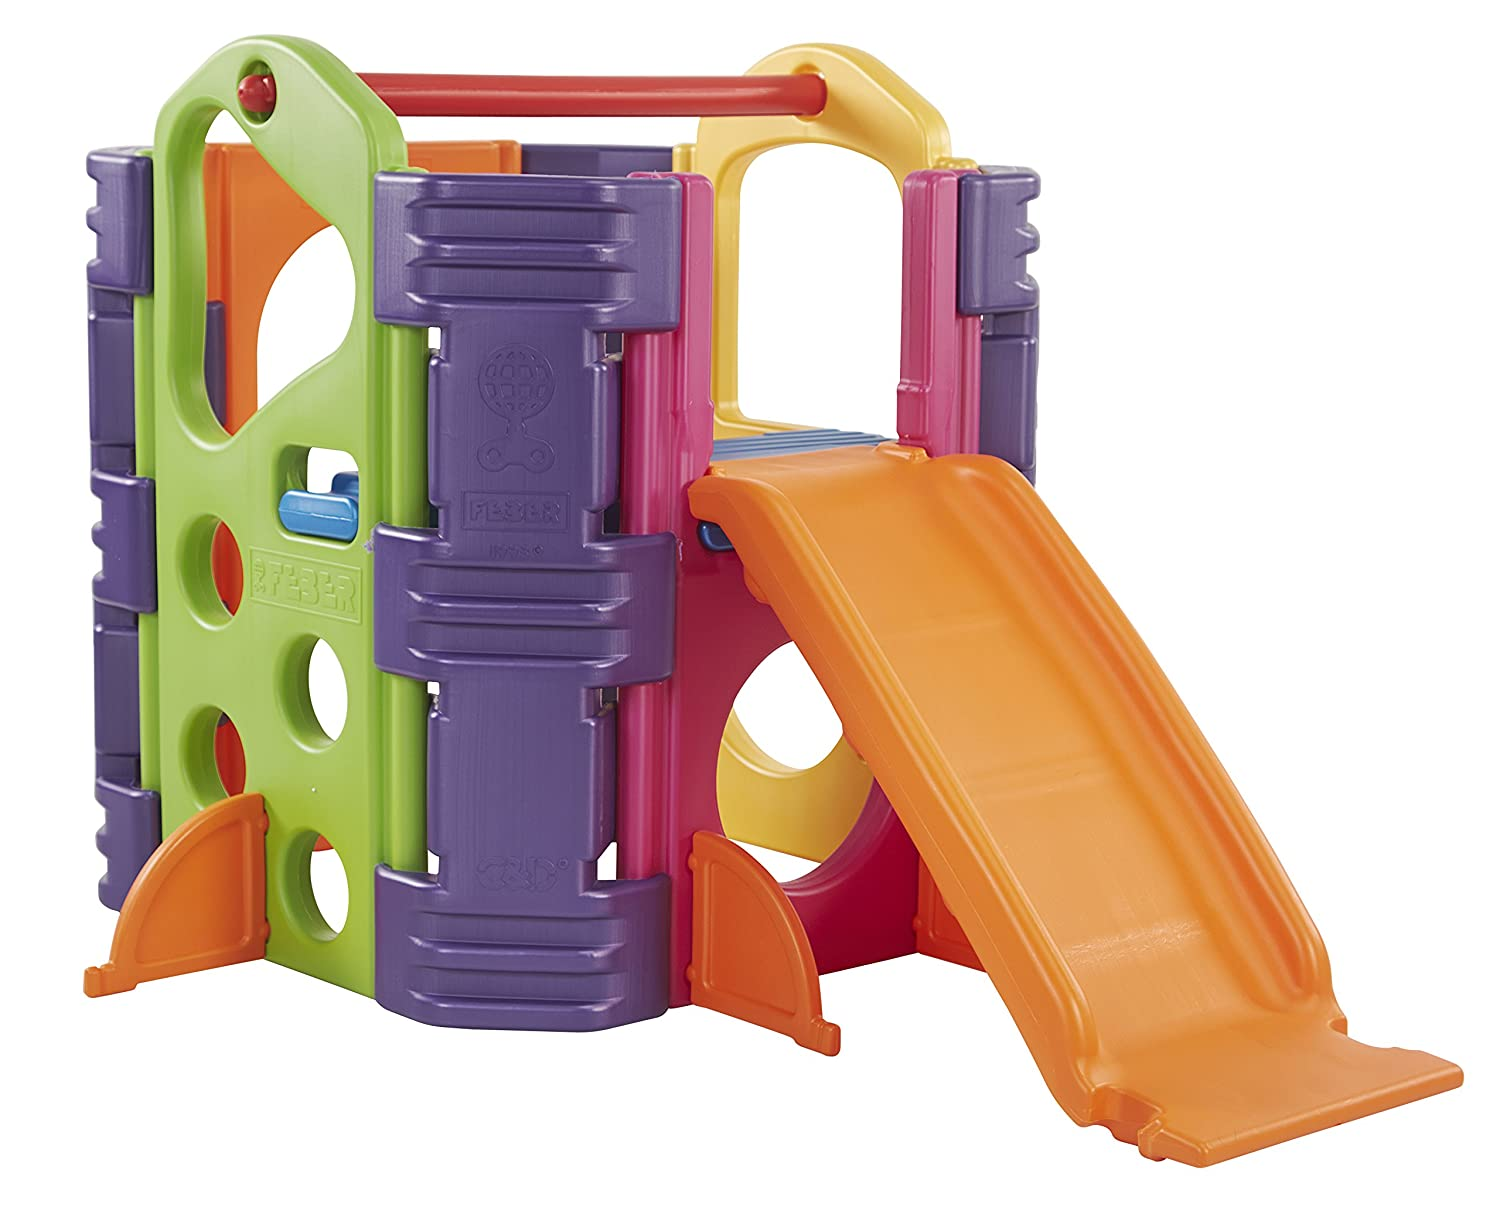 emejing toddler playsets indoor gallery amazing design ideas